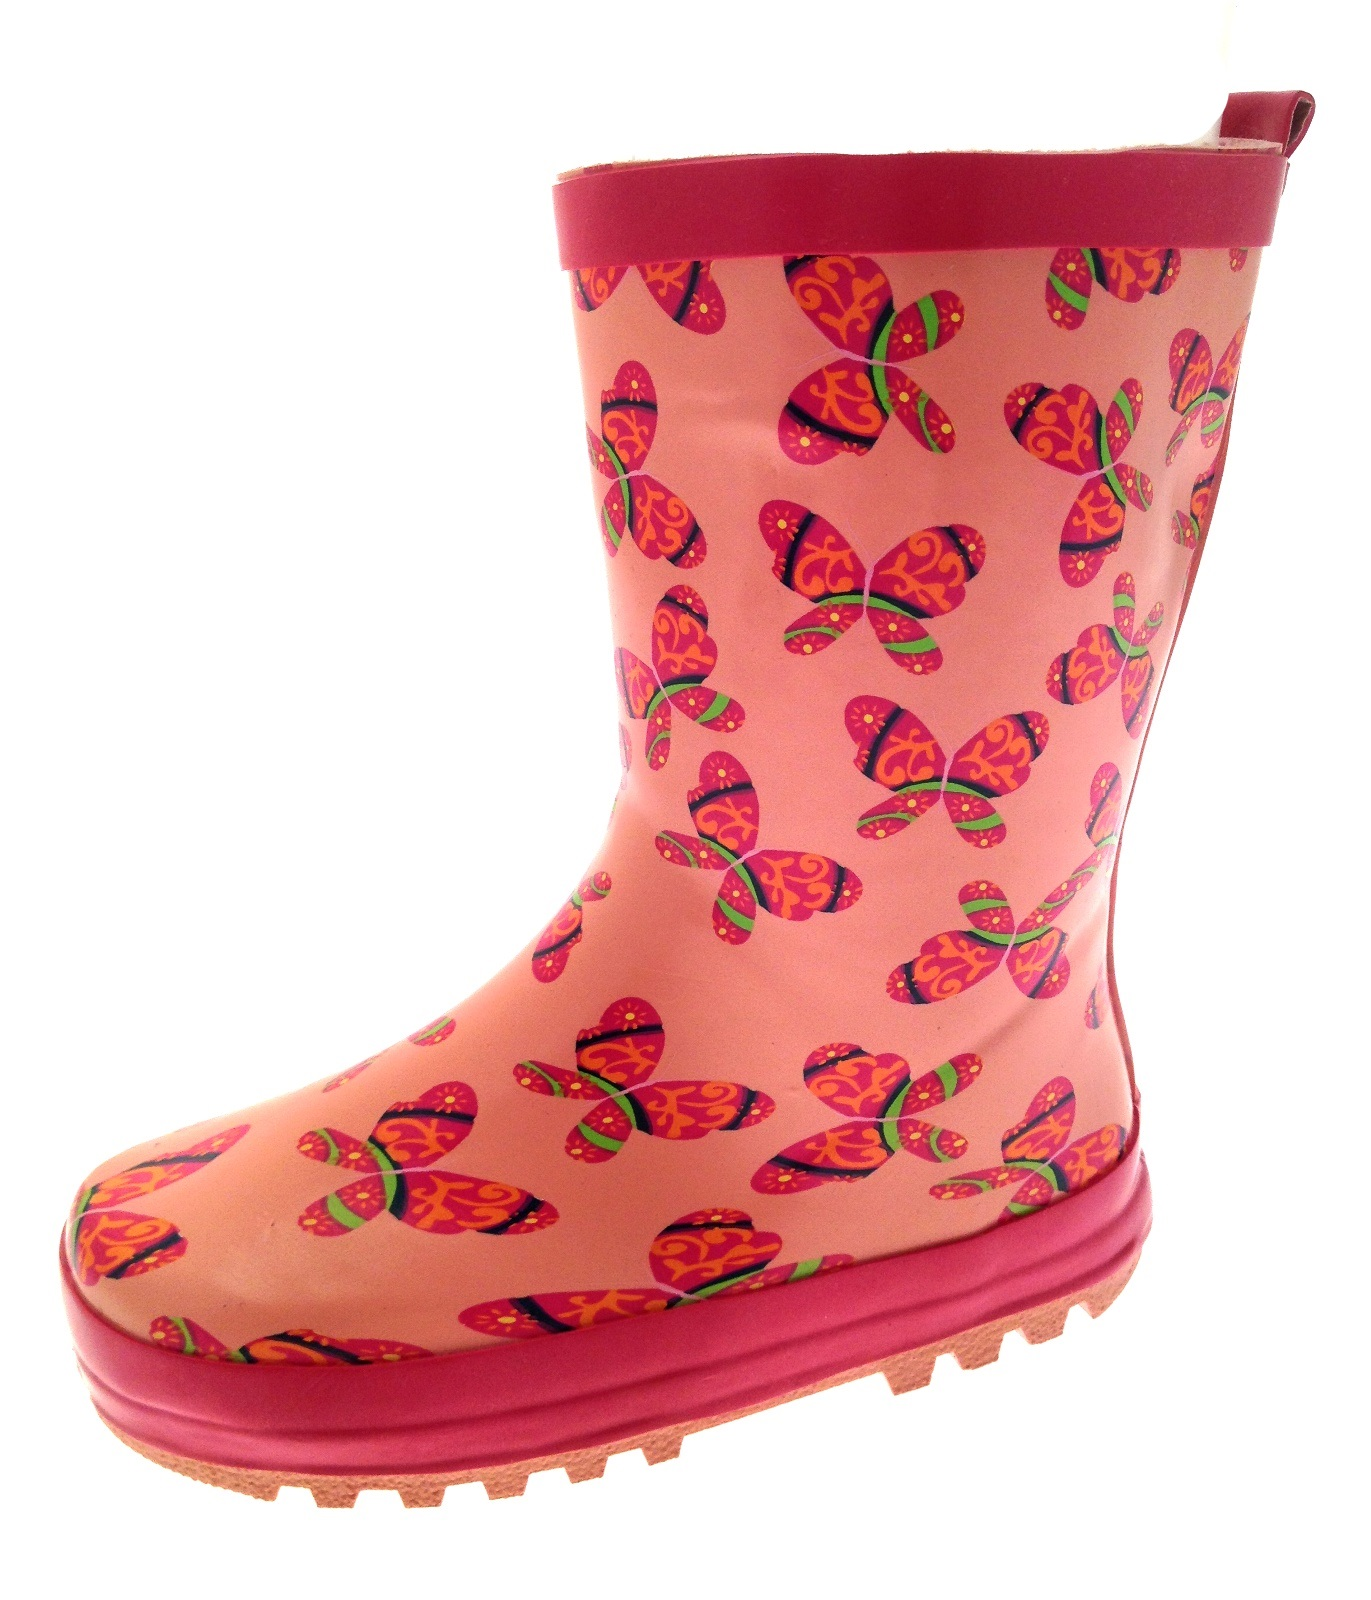 Find great deals on eBay for rubber rain boots. Shop with confidence.